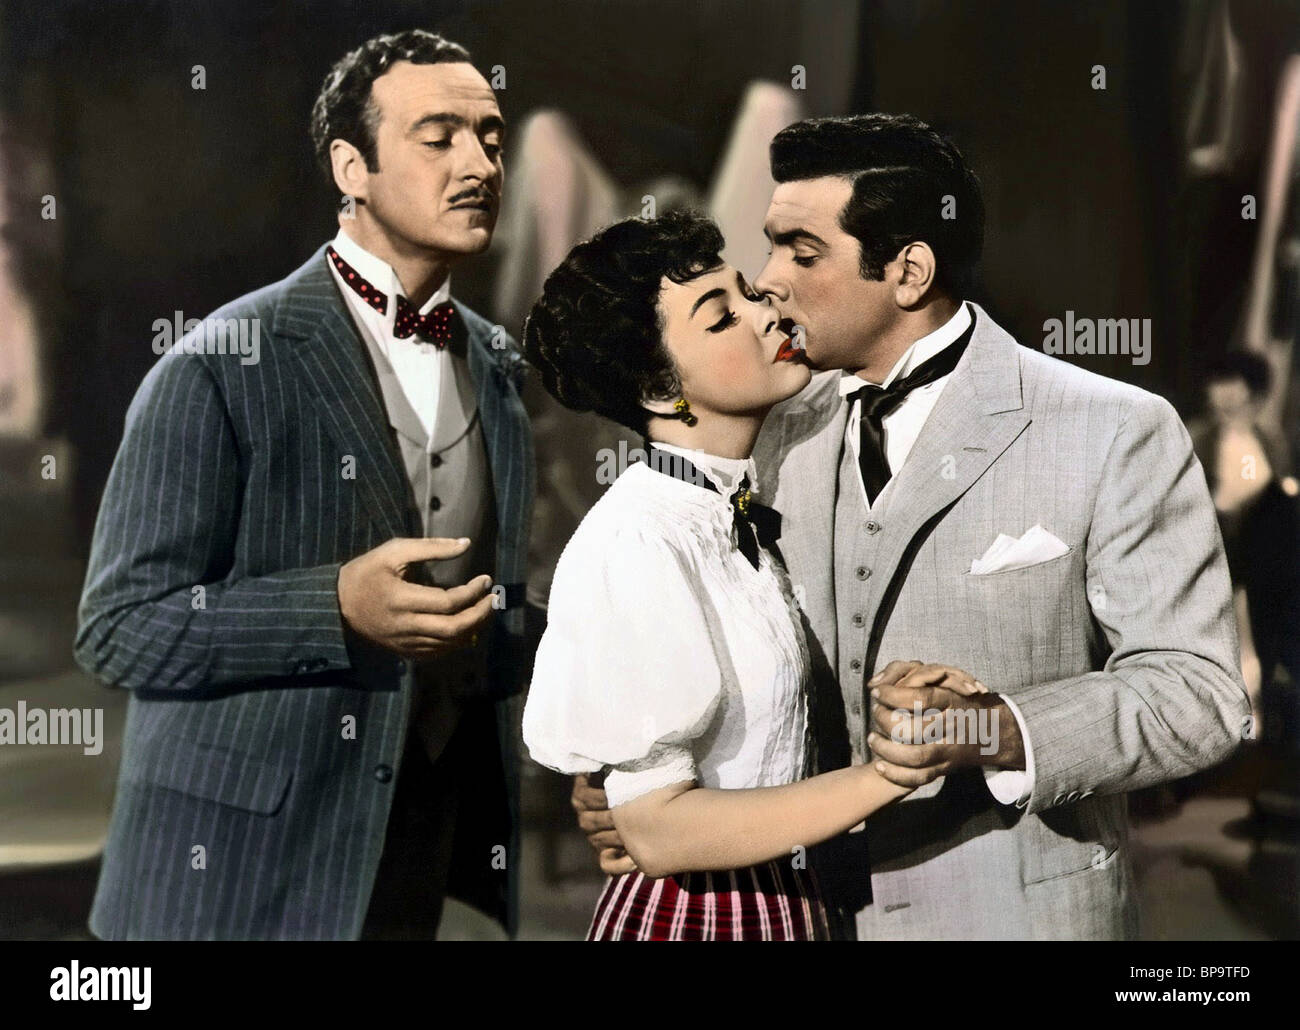 DAVID NIVEN KATHRYN GRAYSON & MARIO LANZA THE TOAST OF NEW ORLEANS (1950) - Stock Image